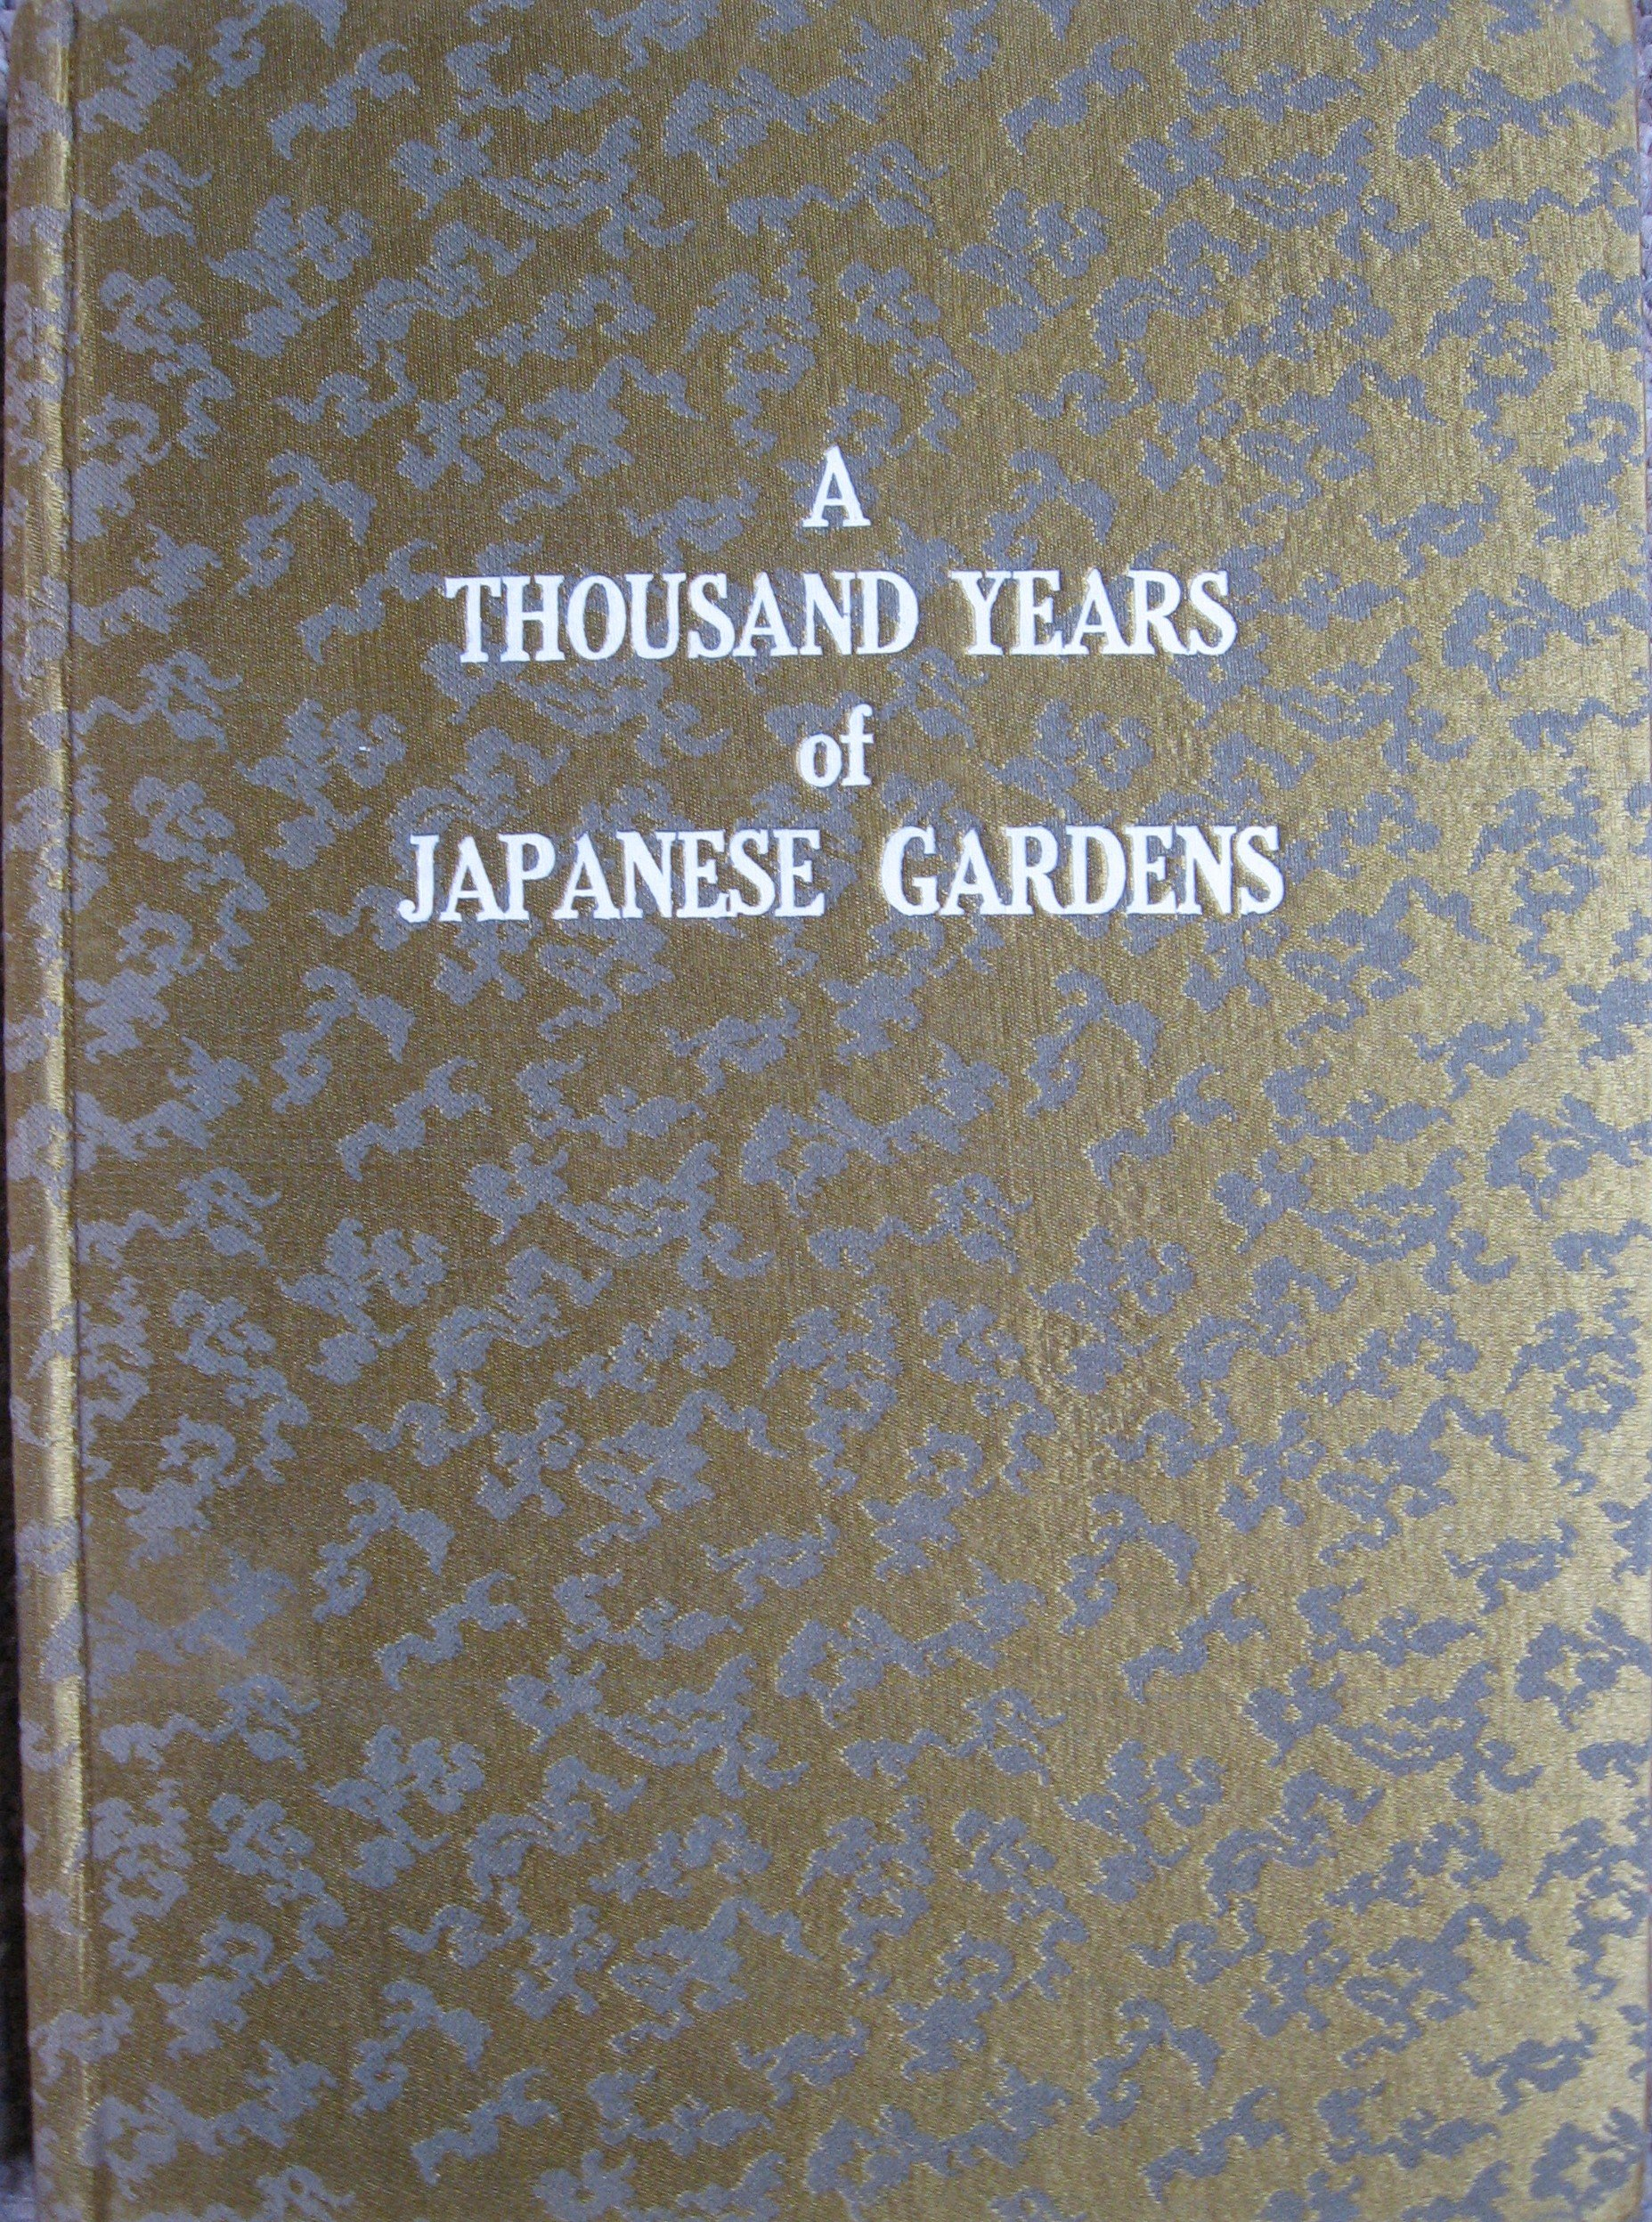 A Thousand years of Japanese Gardens .